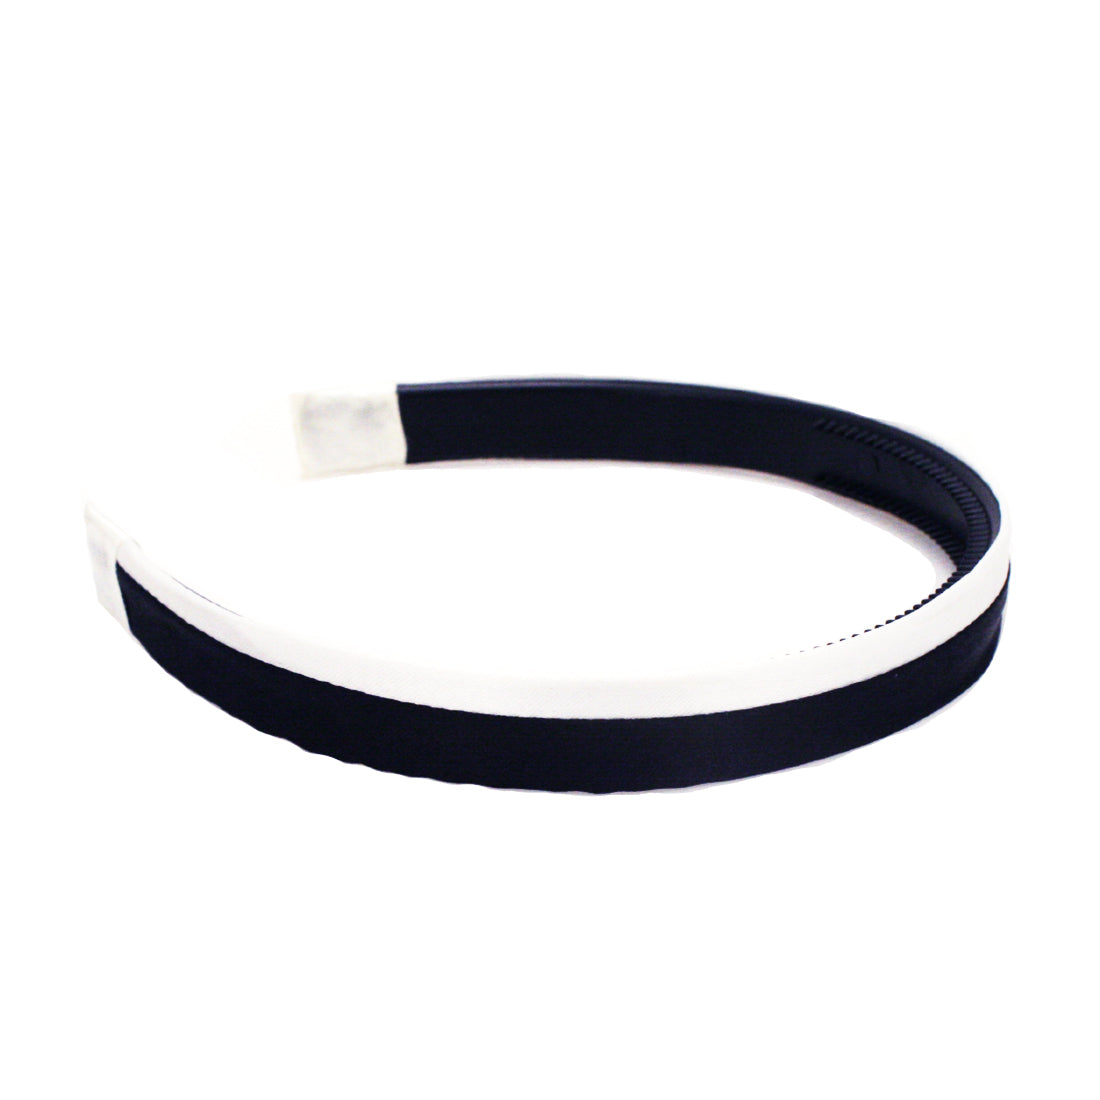 Mia® Color Block Headband - Black + White - #MiaKaminski #Mia #MiaBeauty #Beauty #Hair #HairAccessories #headbands #blackandwhiteheadband #lovethis #love #life #woman